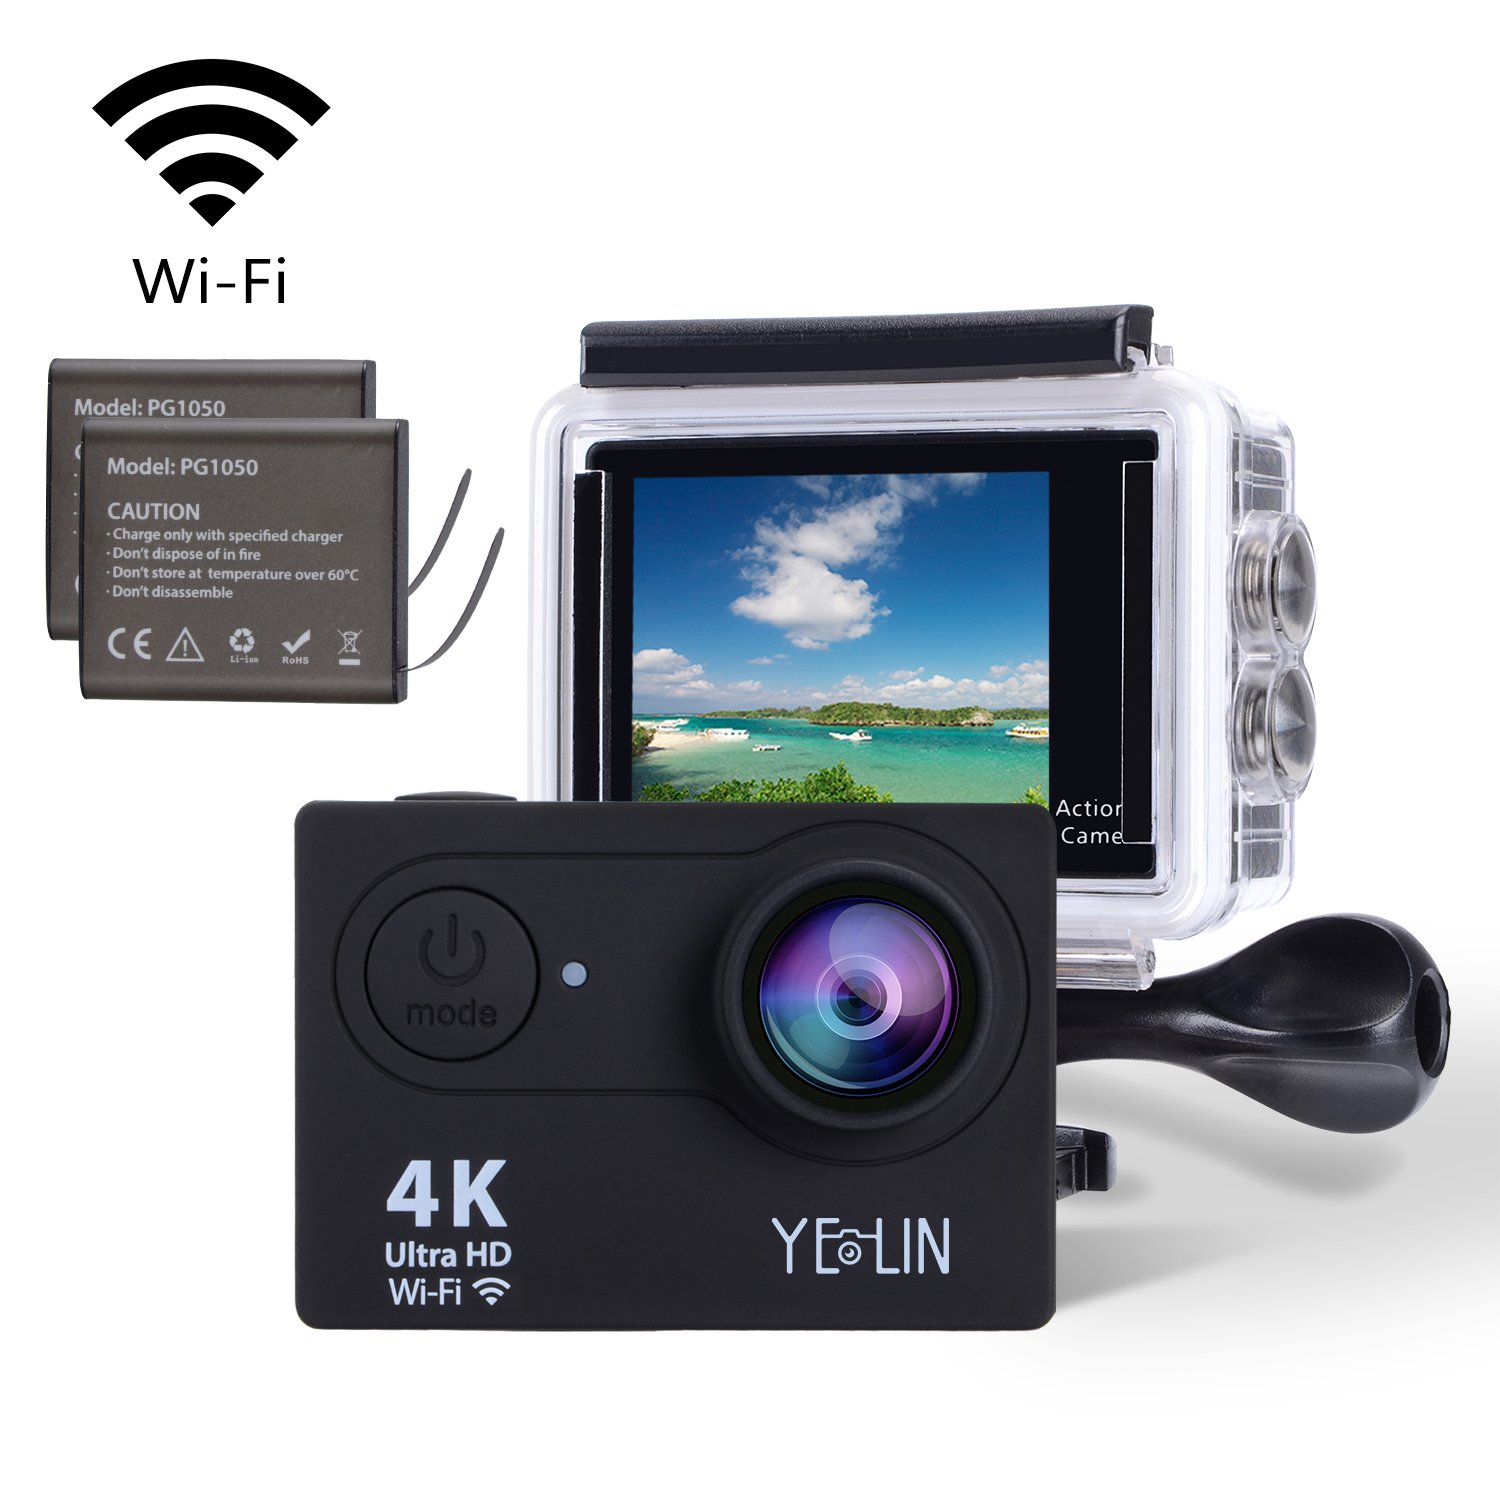 YELIN Action Camera 4K WiFi Waterproof Sport Camera HD 12MP Camcorder 170 Degree Lens with 2-inch LCD Screen 2 Rechargeable Li-ion Batteries 19pcs Accessories (Black)